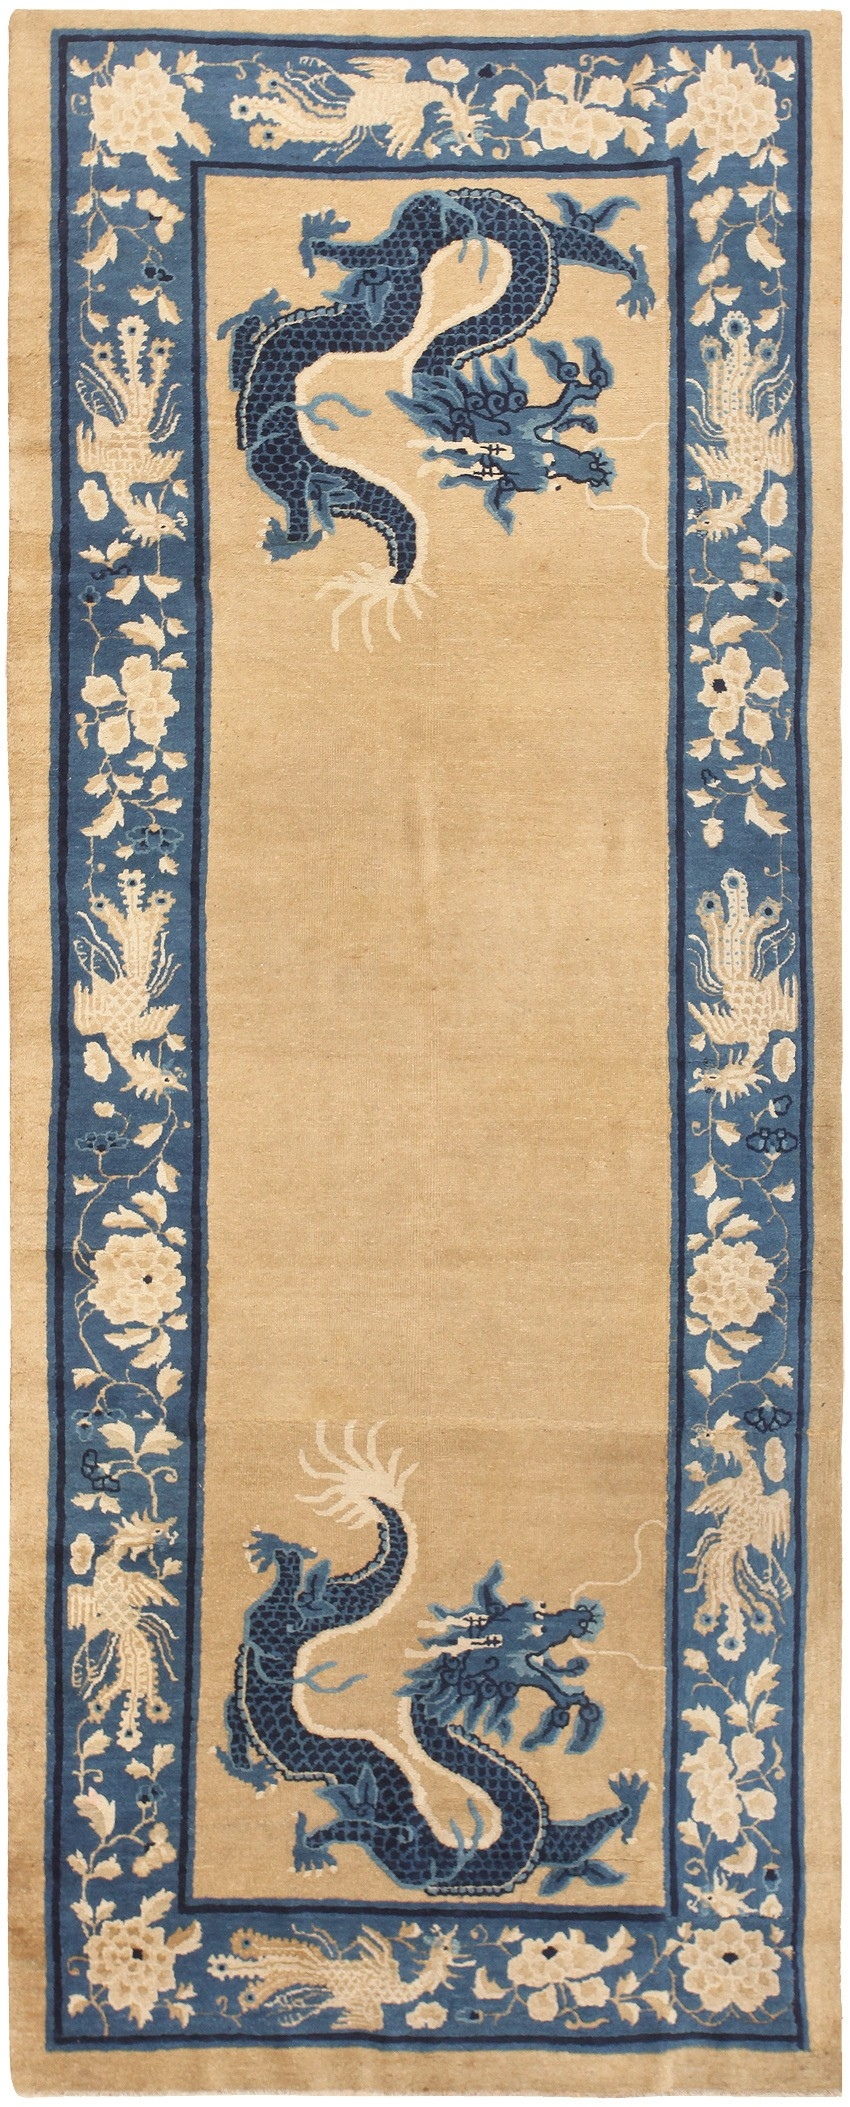 Chinese Rug Antique Chinese Carpet From Nazmiyal Collection Nyc With Regard To Chinese Rugs (Image 10 of 15)